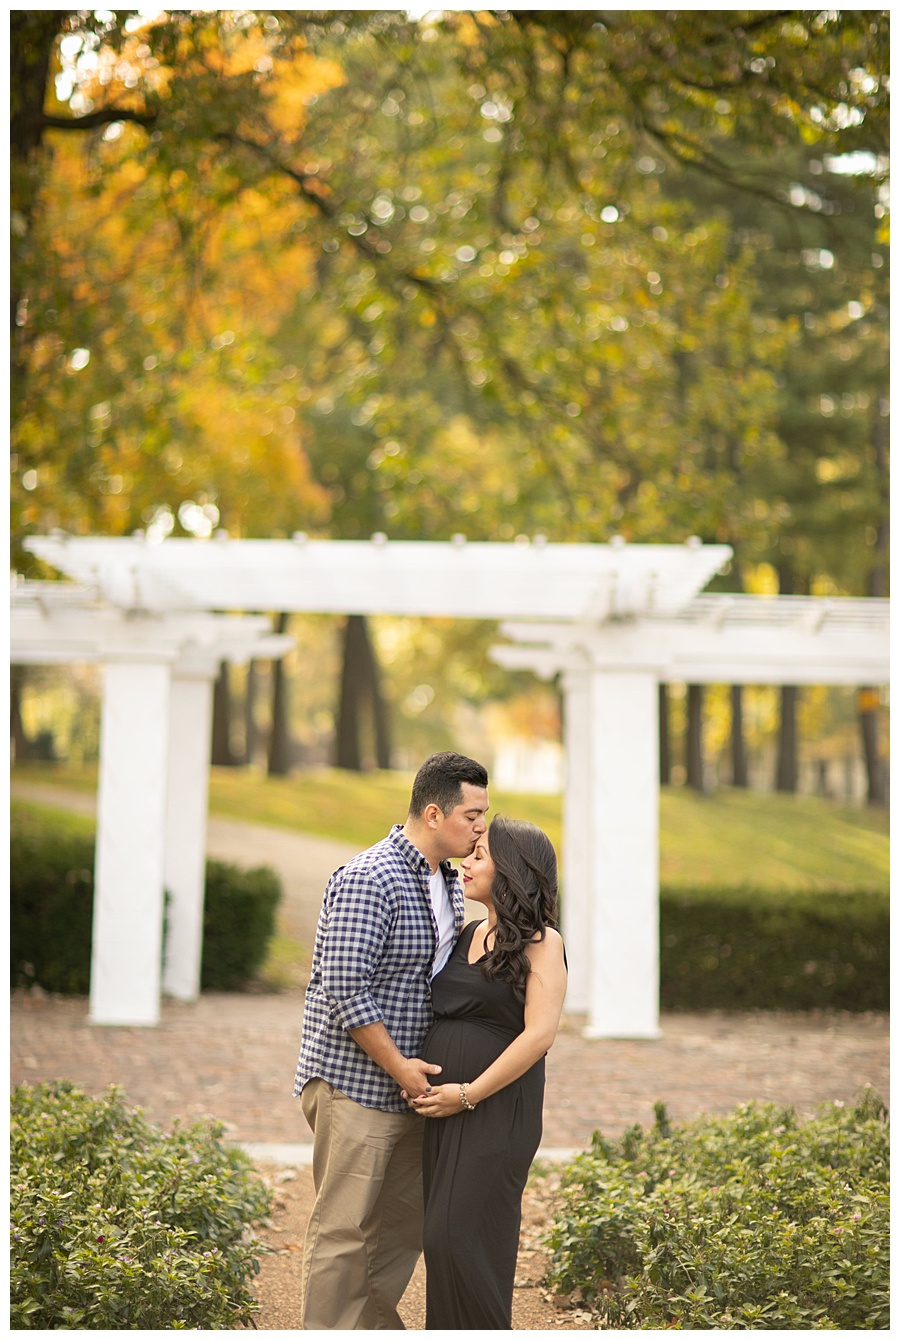 Maternity Photos || Kenosha Maternity Photographer